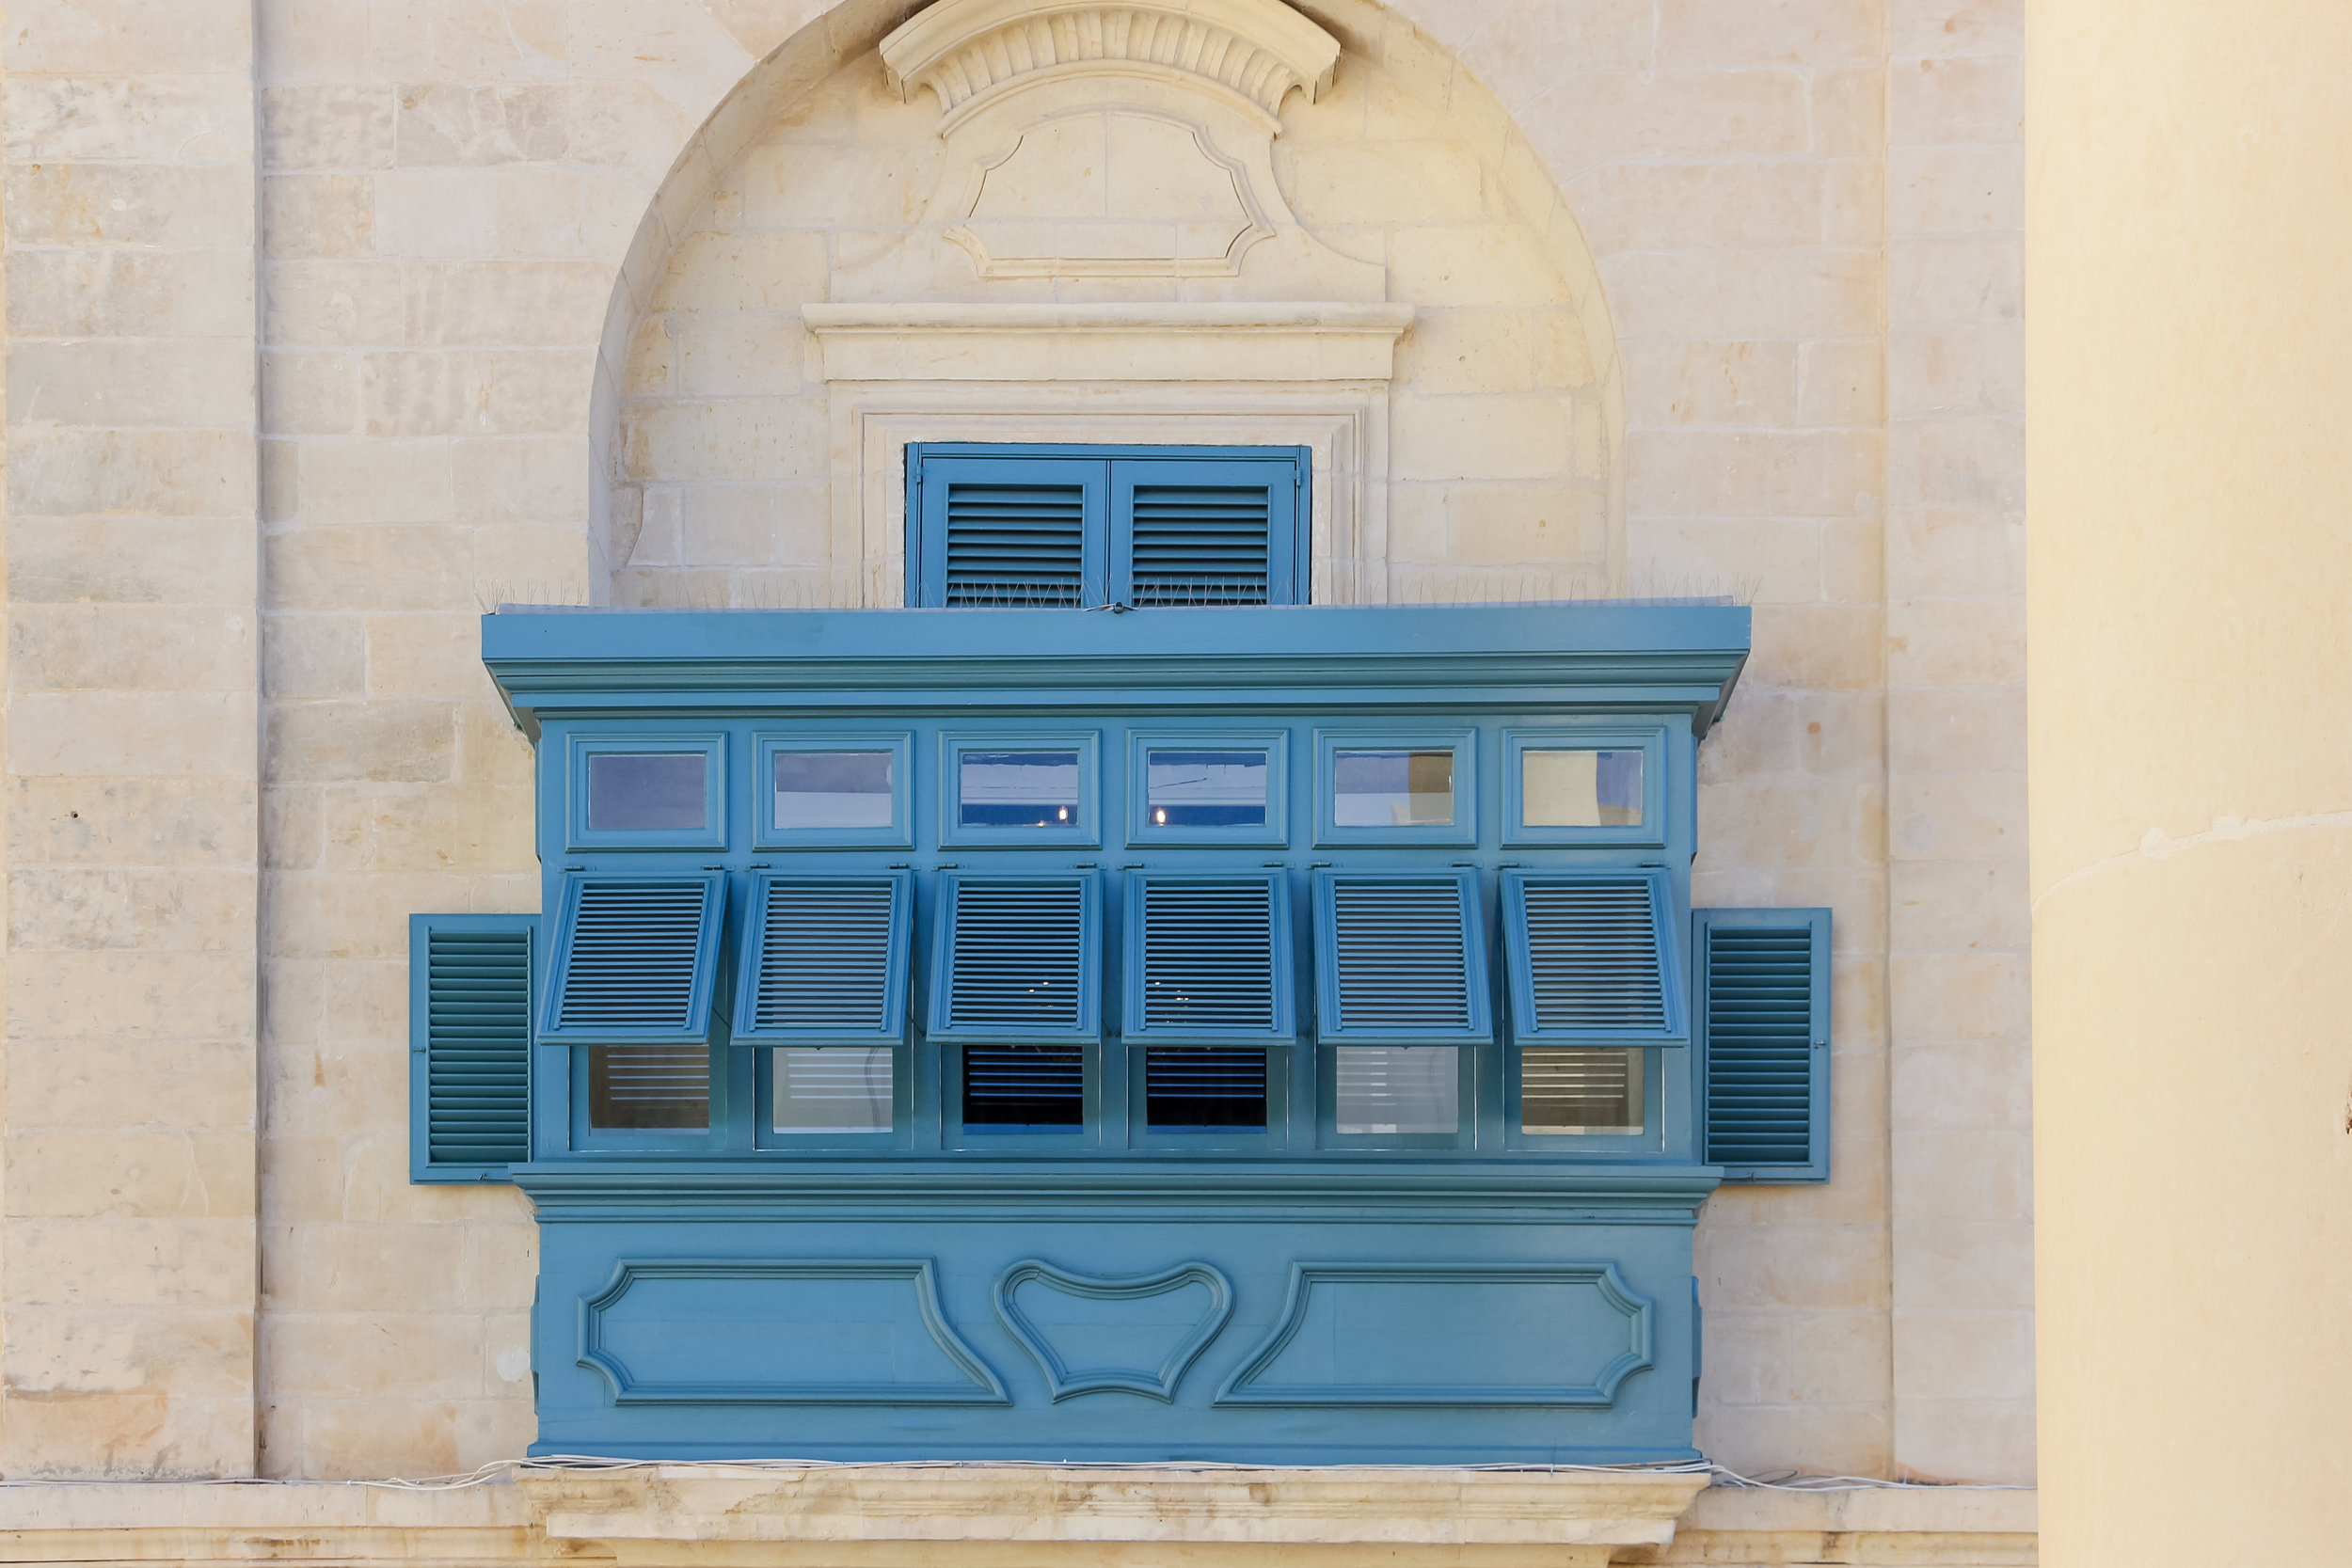 Blue Traditional Maltese Enclosed Wooden BalconY   Old Town of Valletta   - Thinking about appreciation for quality in Malta   Malta, Europe   DoLessGetMoreDone.com   - Canon Architecture Minimal Travel Documentary Photography - search for liveability   Sustainability